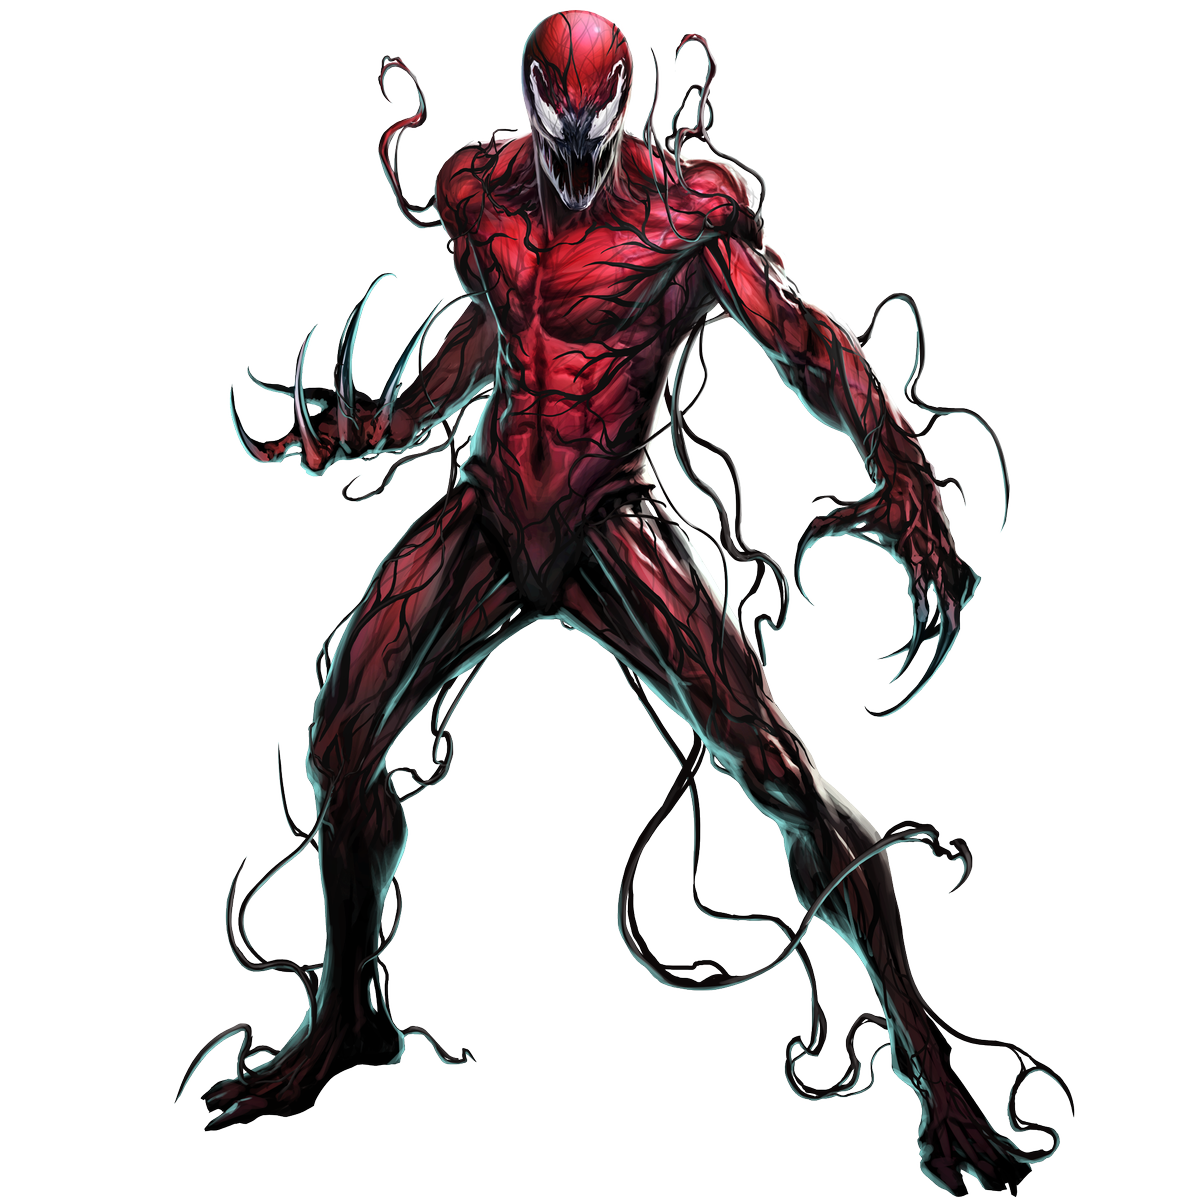 Z3e07 On Twitter So Hyped For The Planned October 2018 Venom Spin Off Film I Heard That Carnage Will Be The Main Antagonist As Well Its Going To Be Epic Https T Co Lvkq564hpl